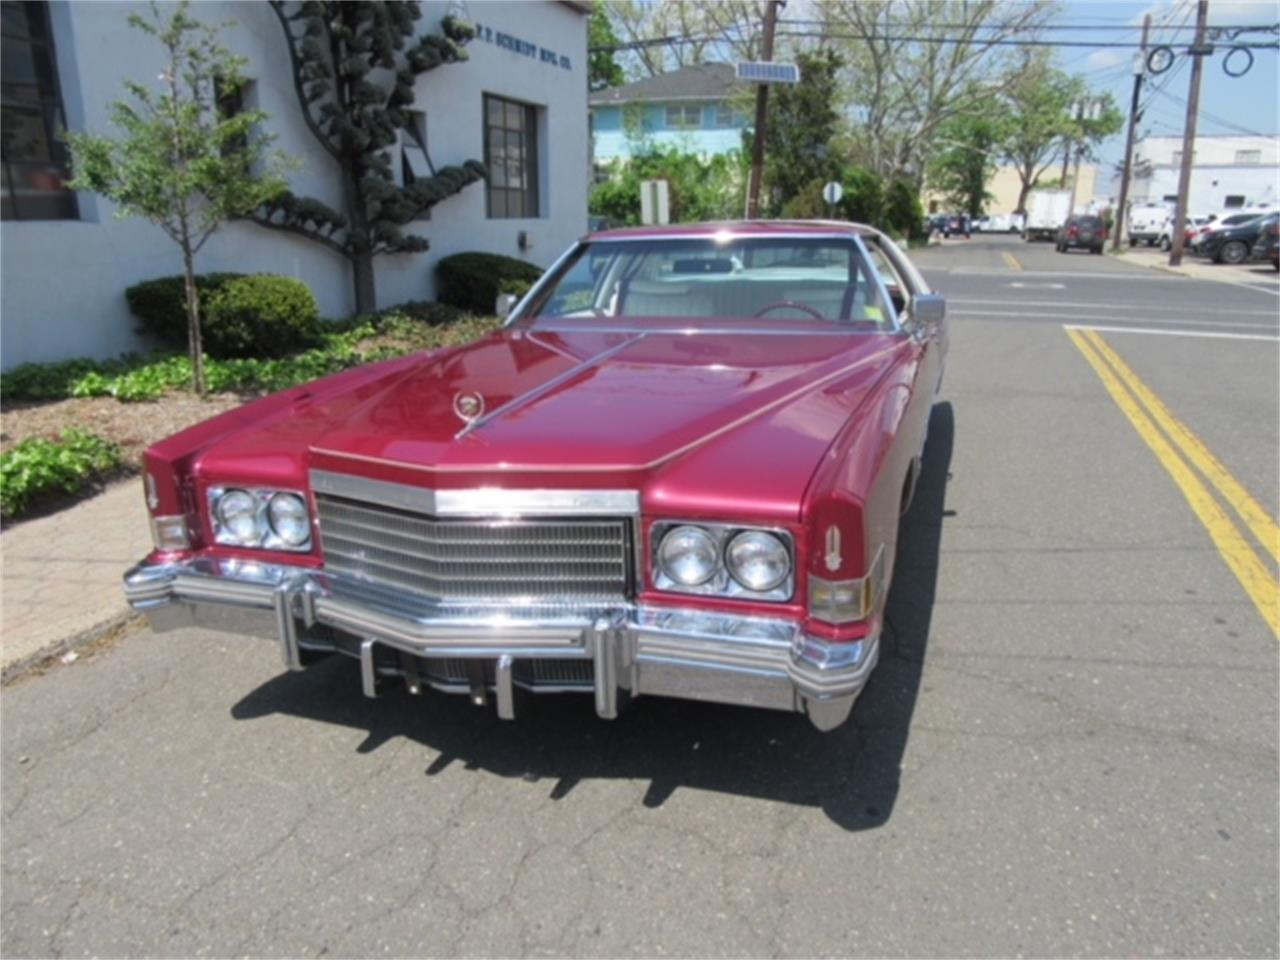 Large Picture of '74 Cadillac Eldorado located in MILL HALL Pennsylvania Auction Vehicle Offered by Central Pennsylvania Auto Auction - NHIV